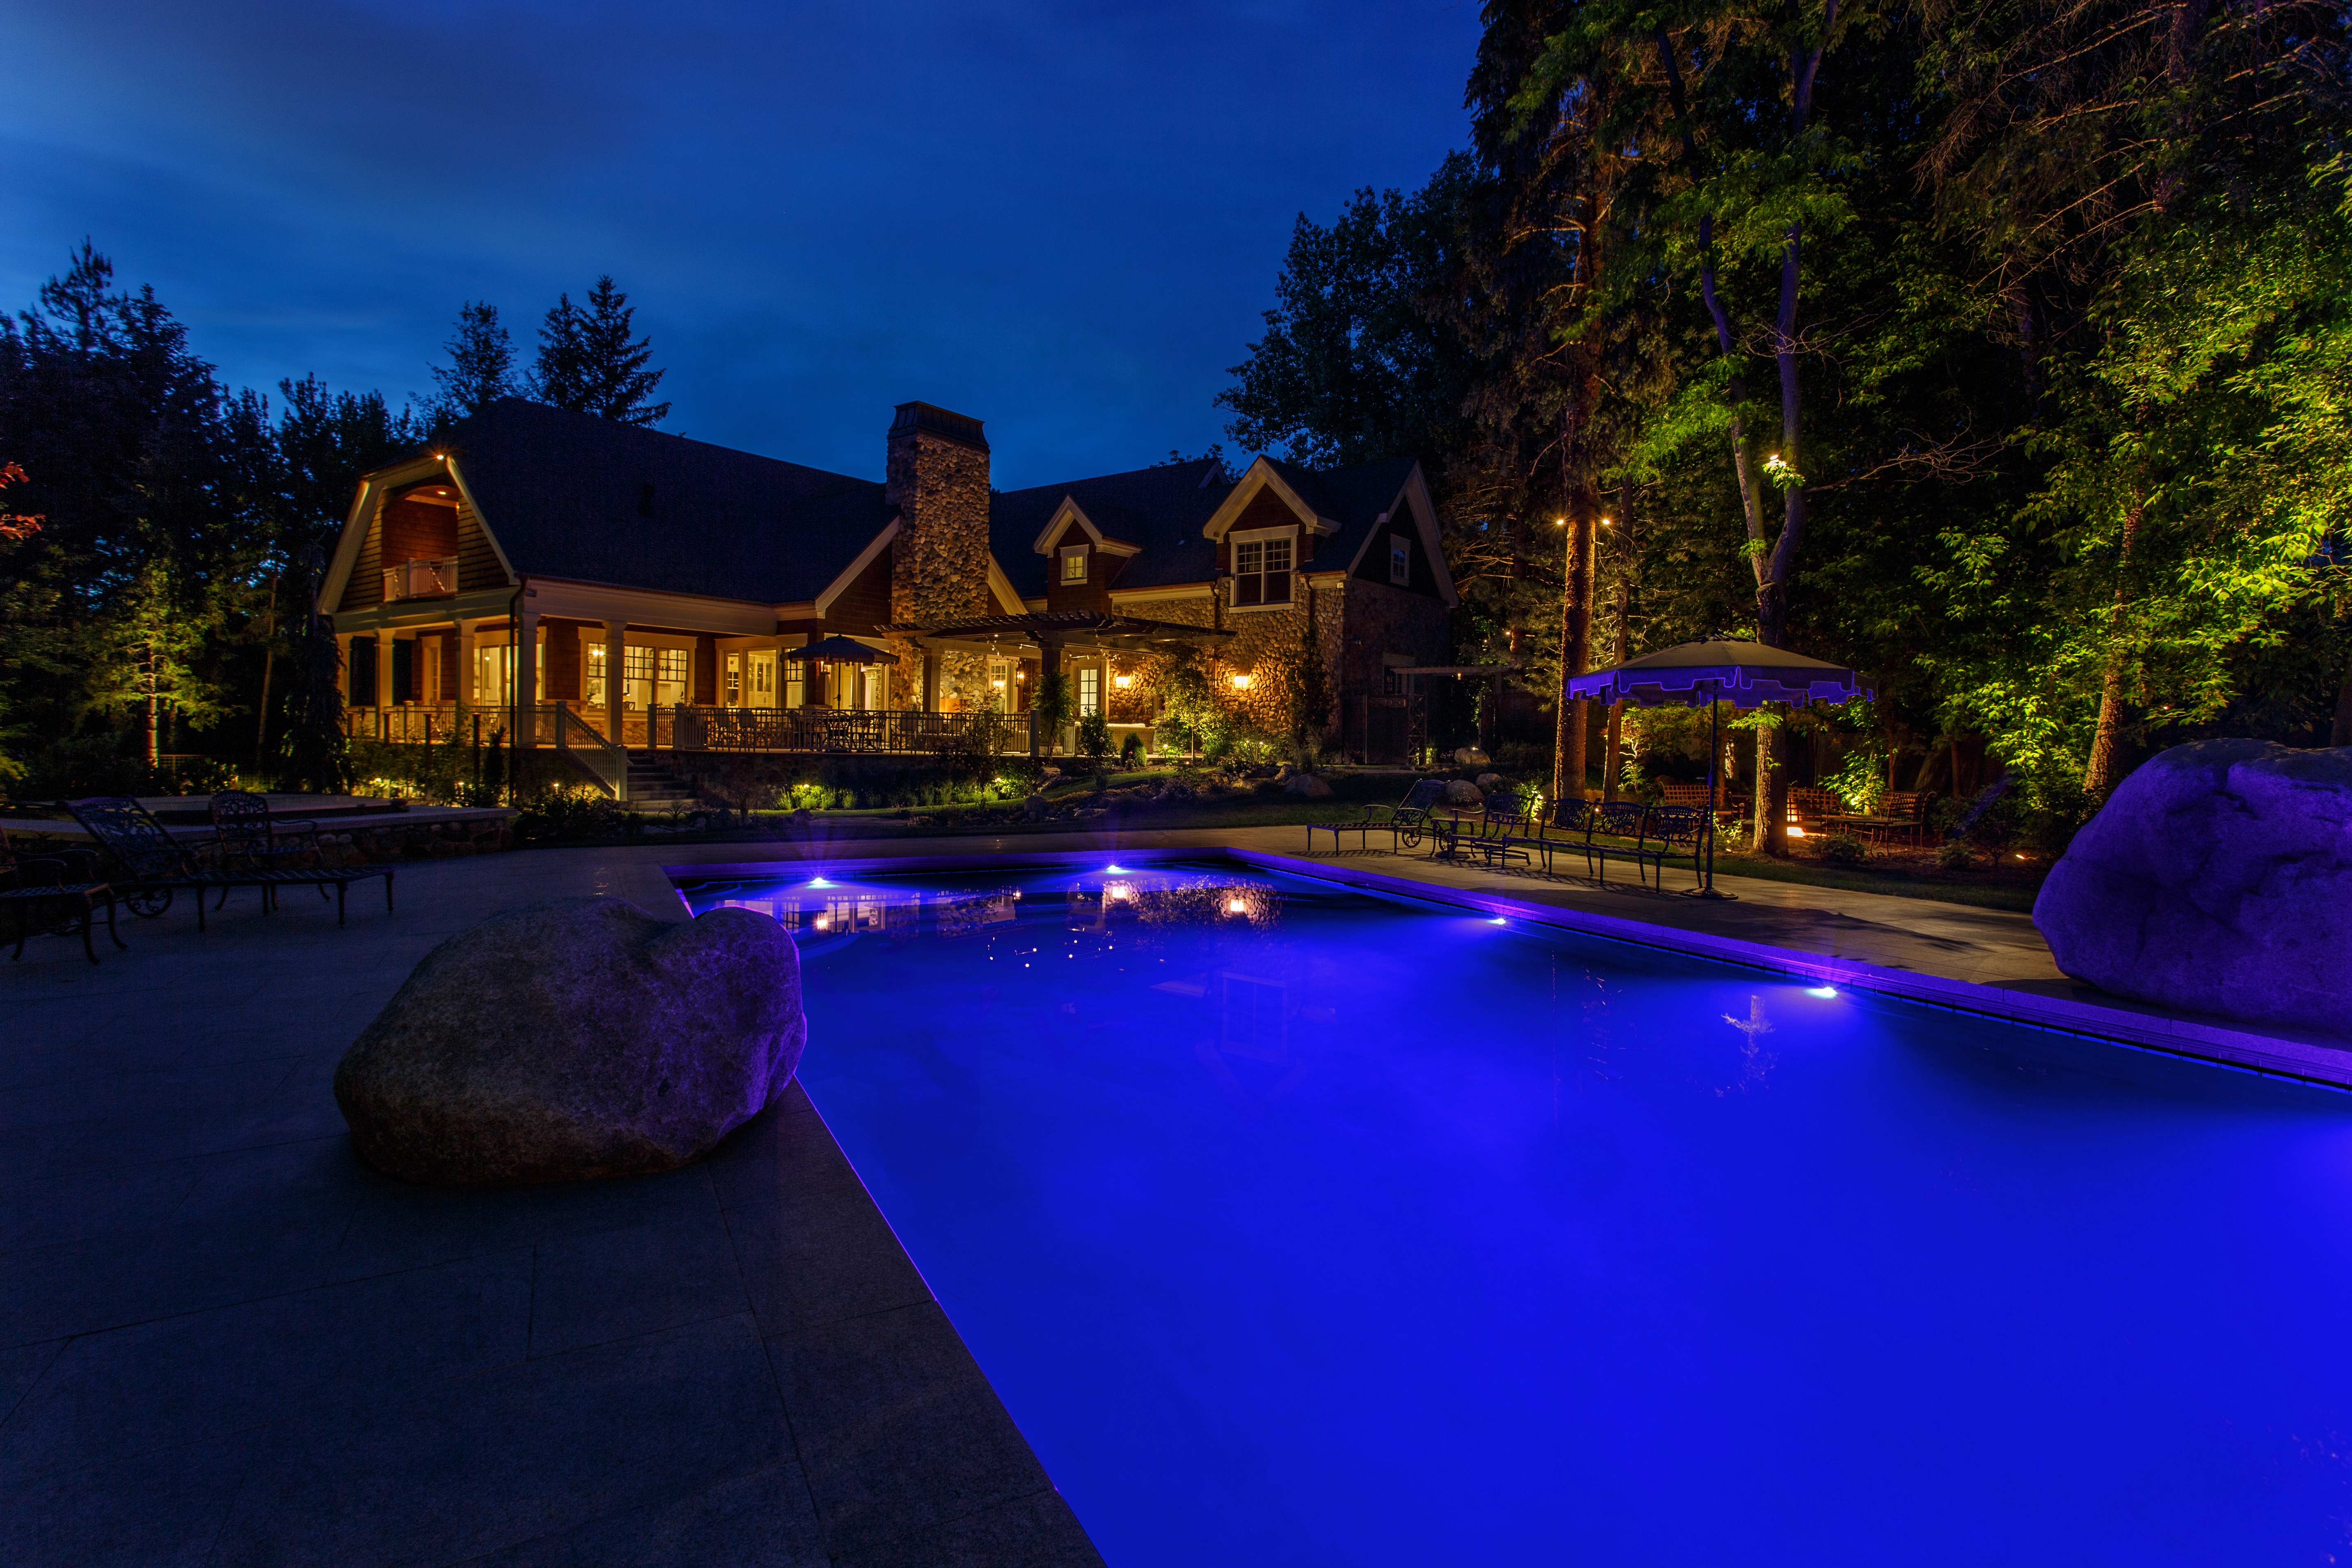 Before you even get in contact with your lighting designer youu0027ve already looked at beautiful images of lighting design. Youu0027ve figured out what you like ... & The Bright Ideas Blog | Landscape Lighting Pro of Utah | LED ...